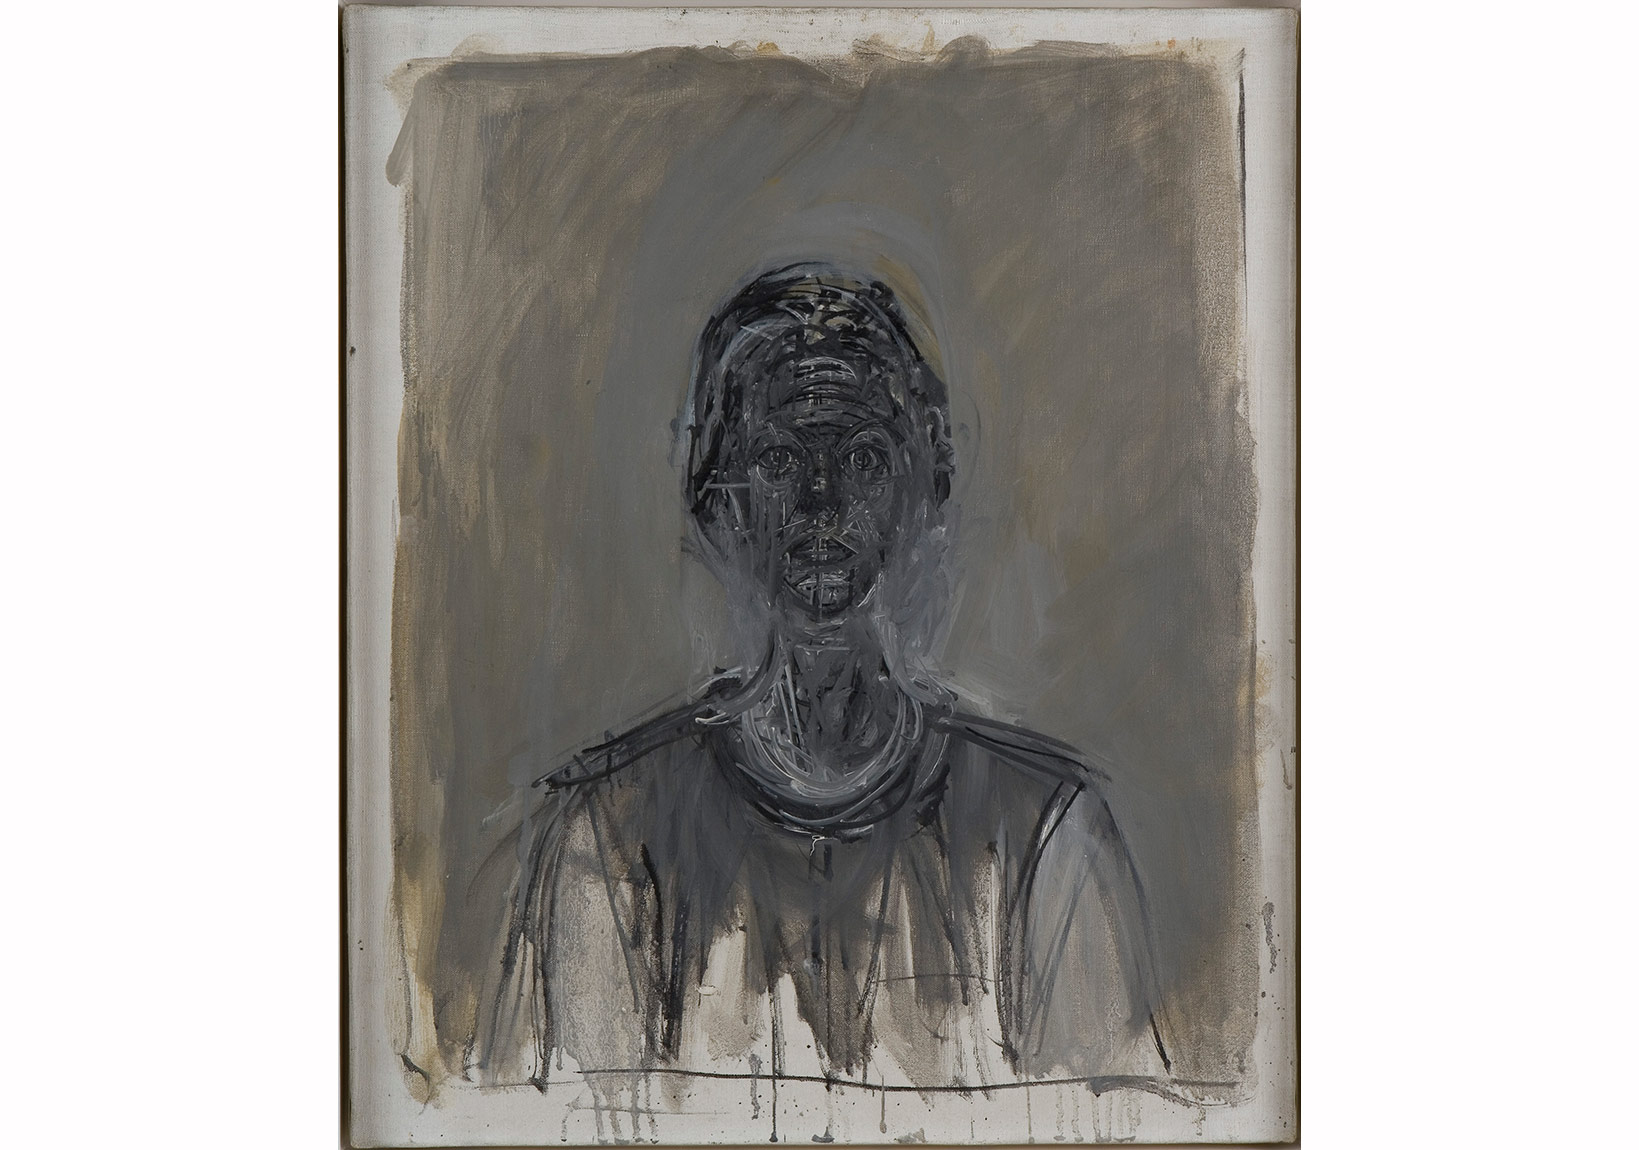 Alberto Giacometti, Kara Annette, 1962- Black Annette, 1962 Tuval üstüne yağlıboya / Oil on canvas 55 x 45,8 cm Giacometti Vakfı Koleksiyonu, Paris, env. 1994-0618 Giacometti Foundation Collection, Paris, inv. 1994-0618 © Estate Giacometti (Fondation Giacometti + ADAGP) Paris, 2015